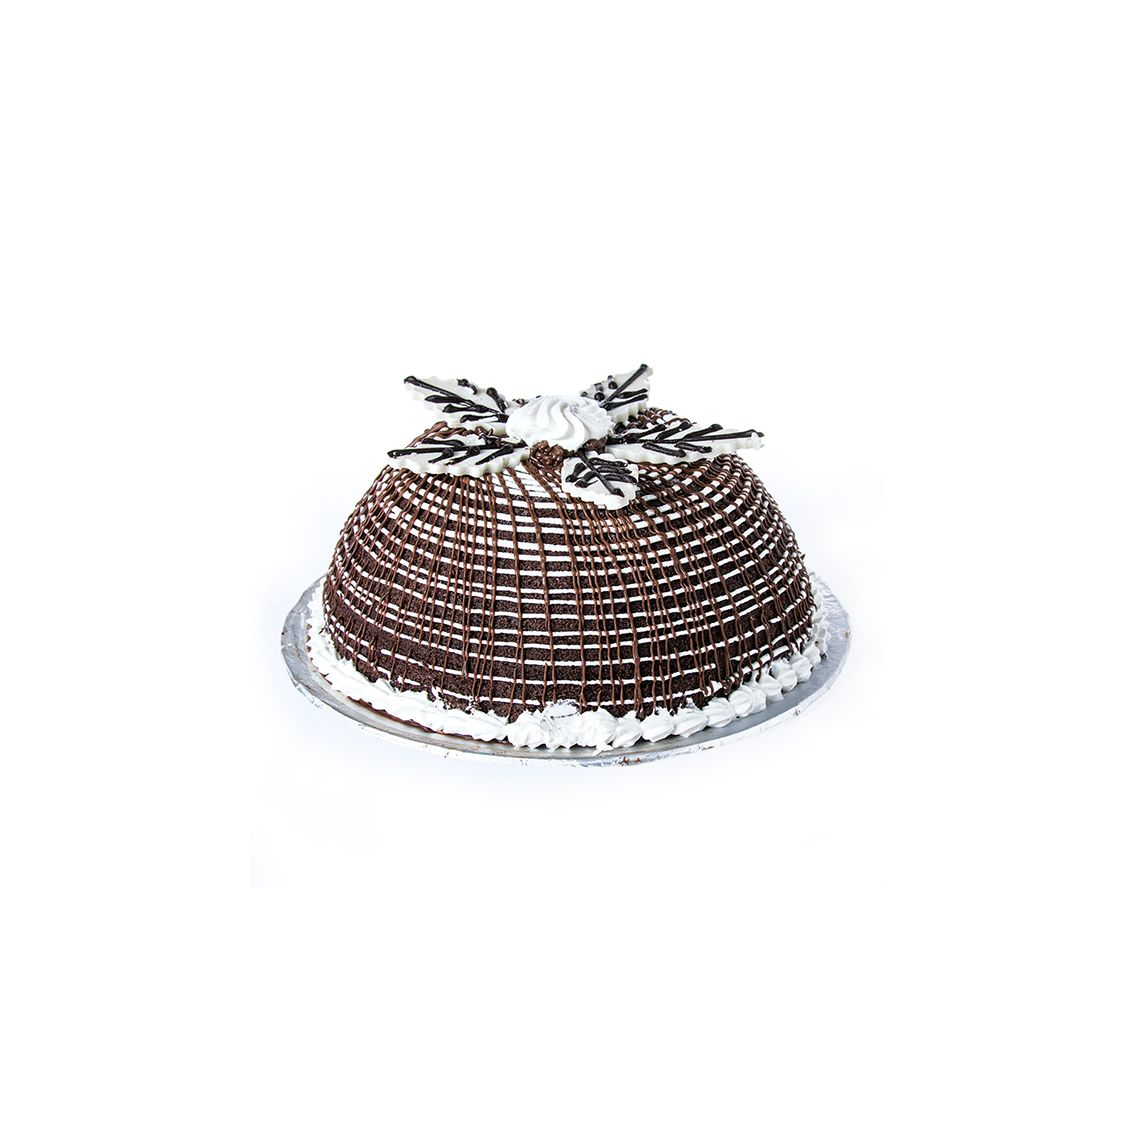 Kitchen Cuisine Default Category Chocolate Ice Cream Bombe